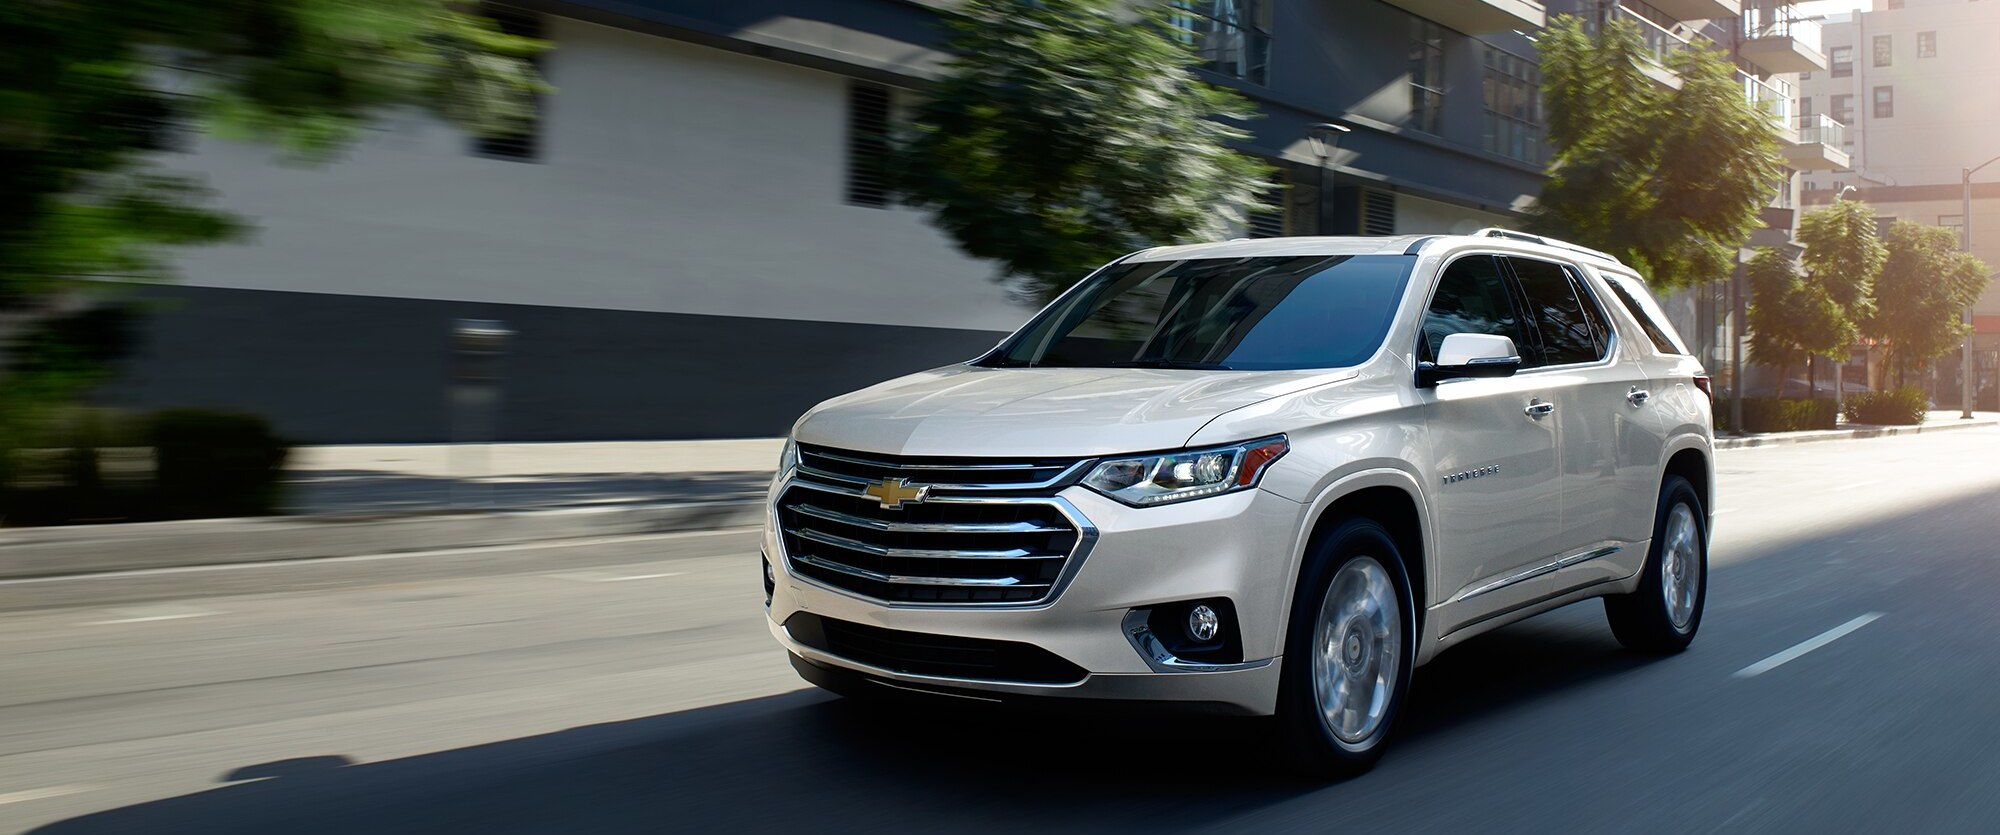 2020 Chevrolet Traverse for Sale near Brookings, SD